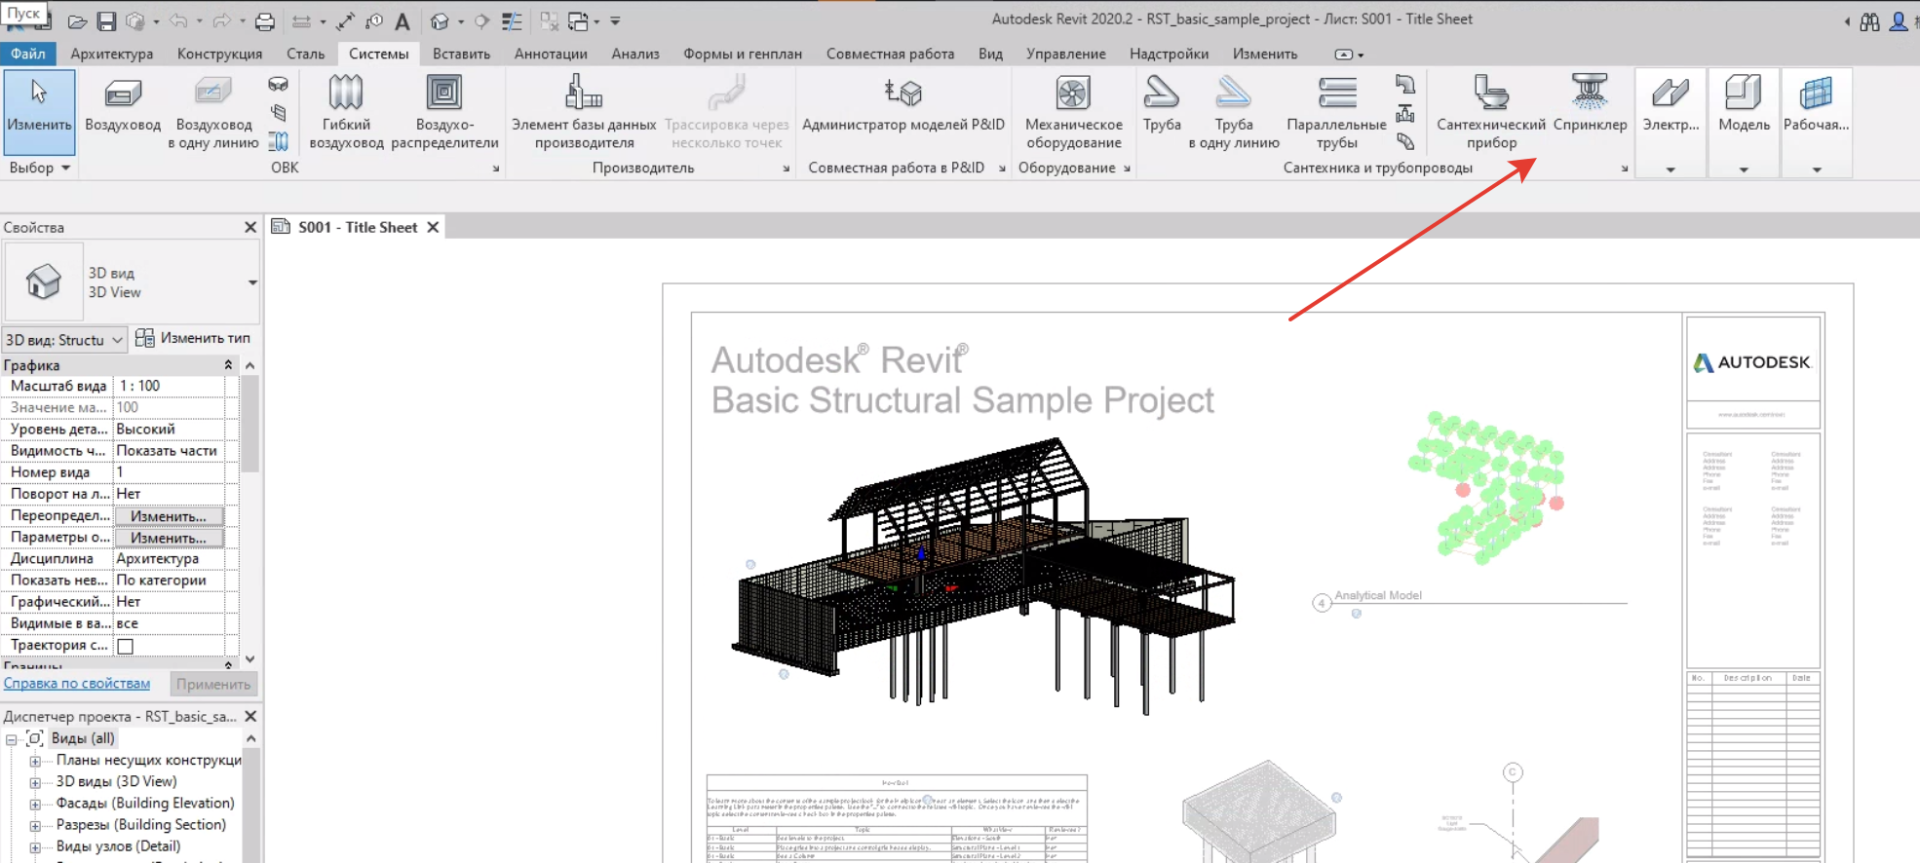 Добавления семейства спринклеров в Autodesk Revit Рис 3